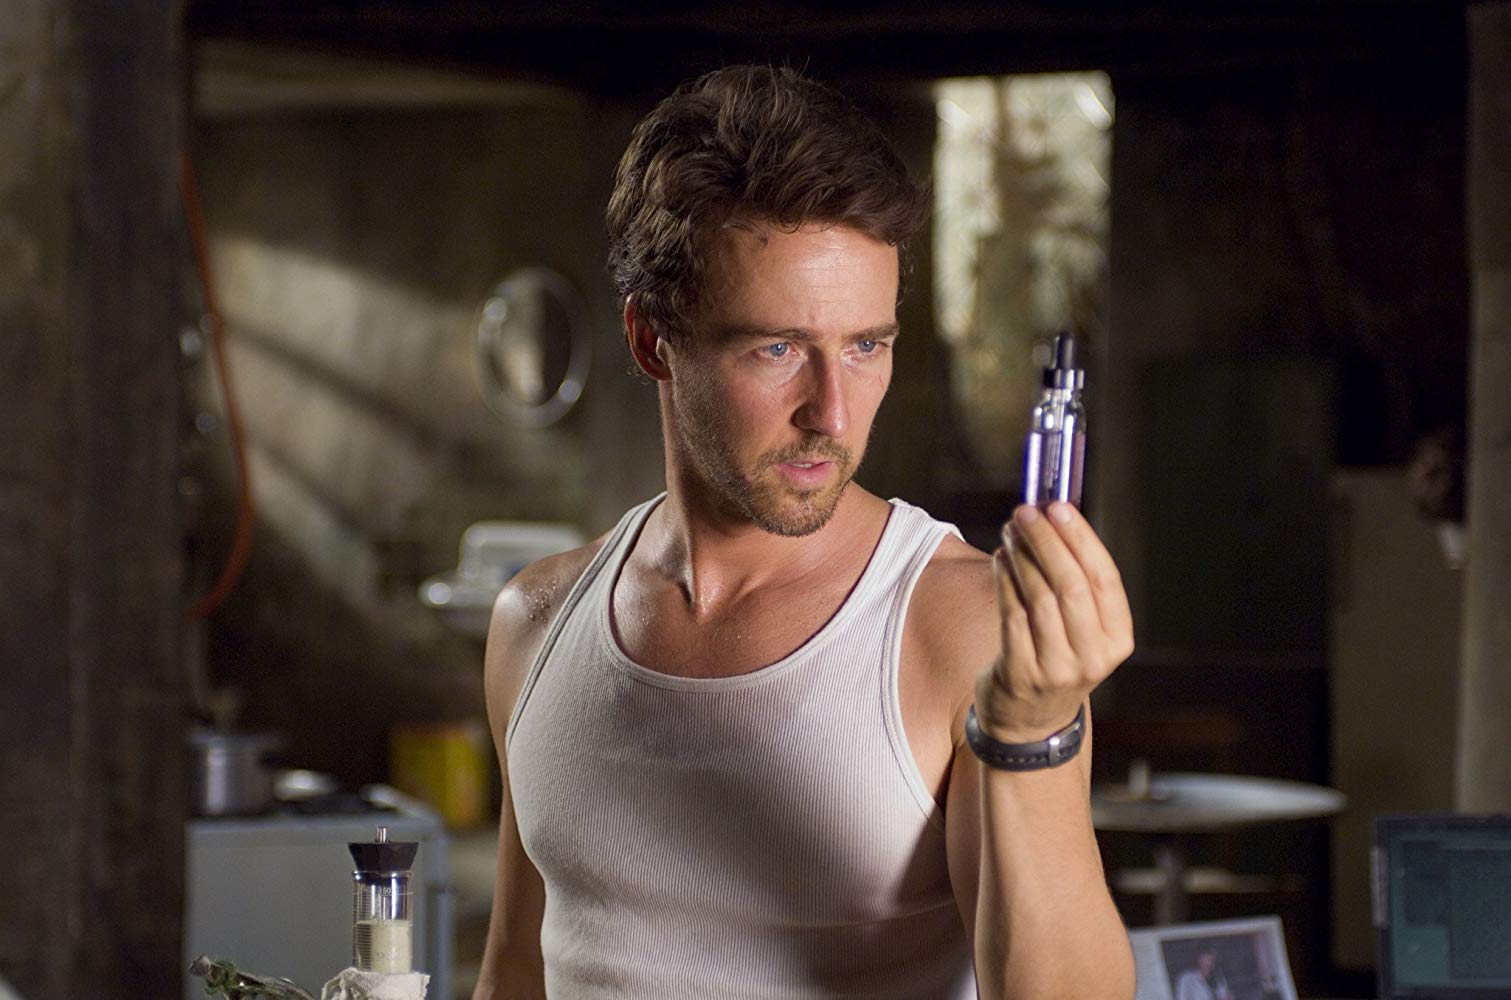 Edward Norton as Bruce Banner in The Incredible Hulk (2008)